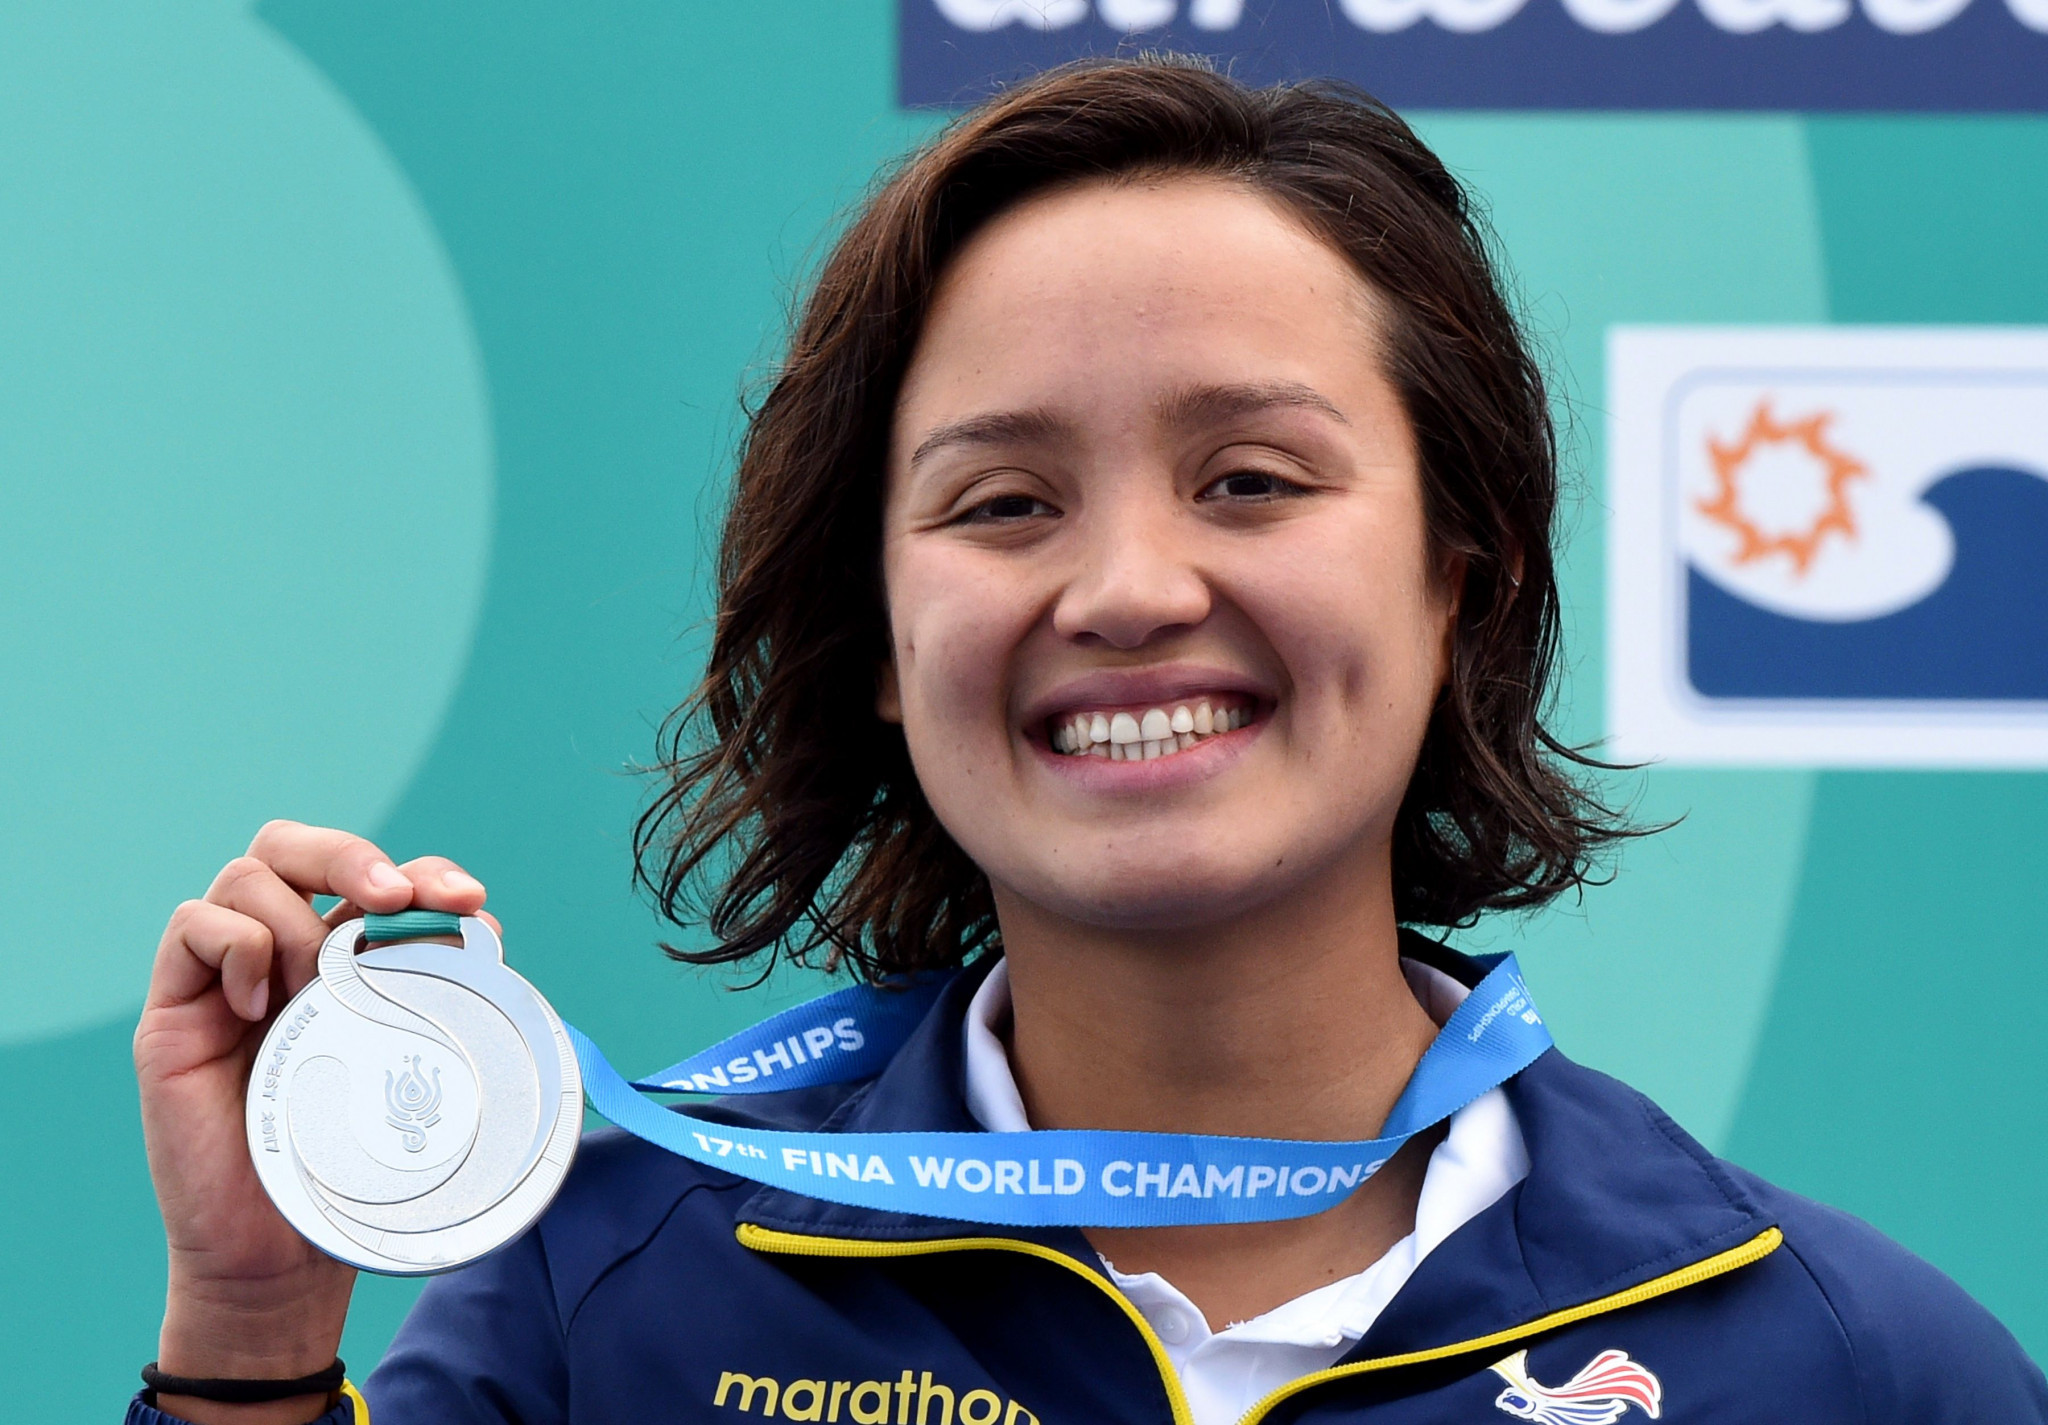 Samantha Arévalo won silver for Ecuador at the World Aquatics Championships in Budapest ©Getty Images